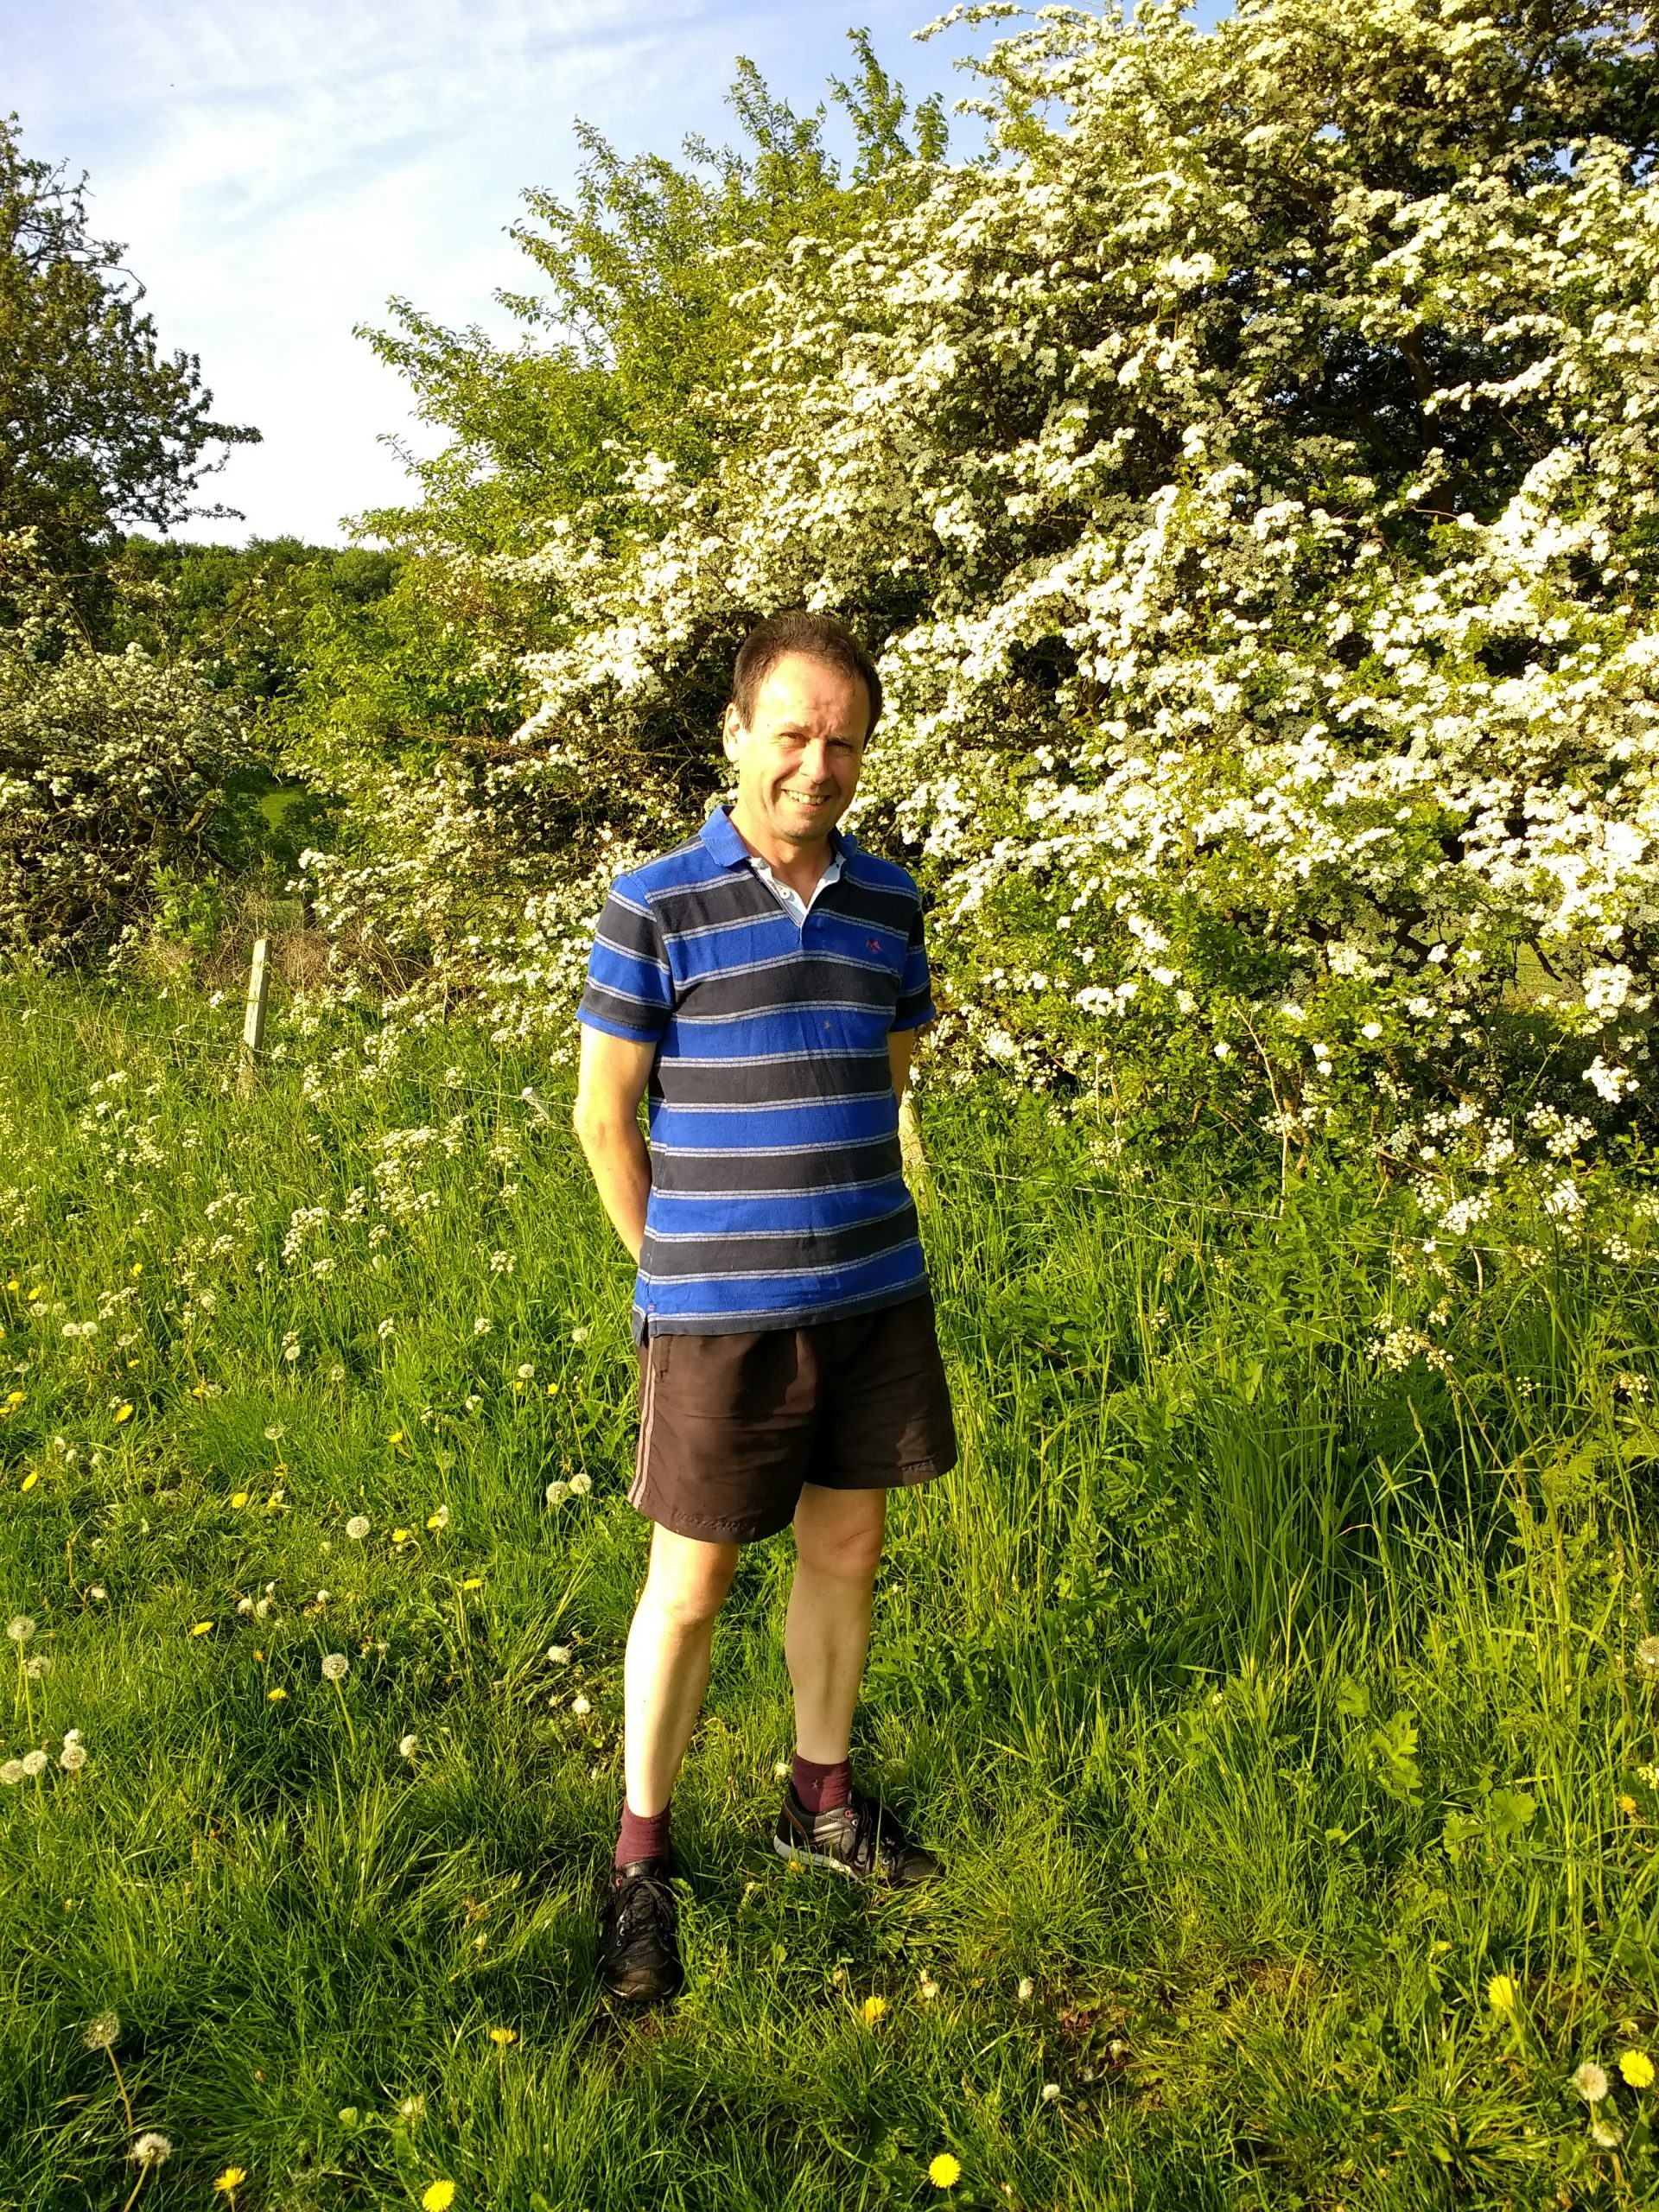 May blossom in the hedge